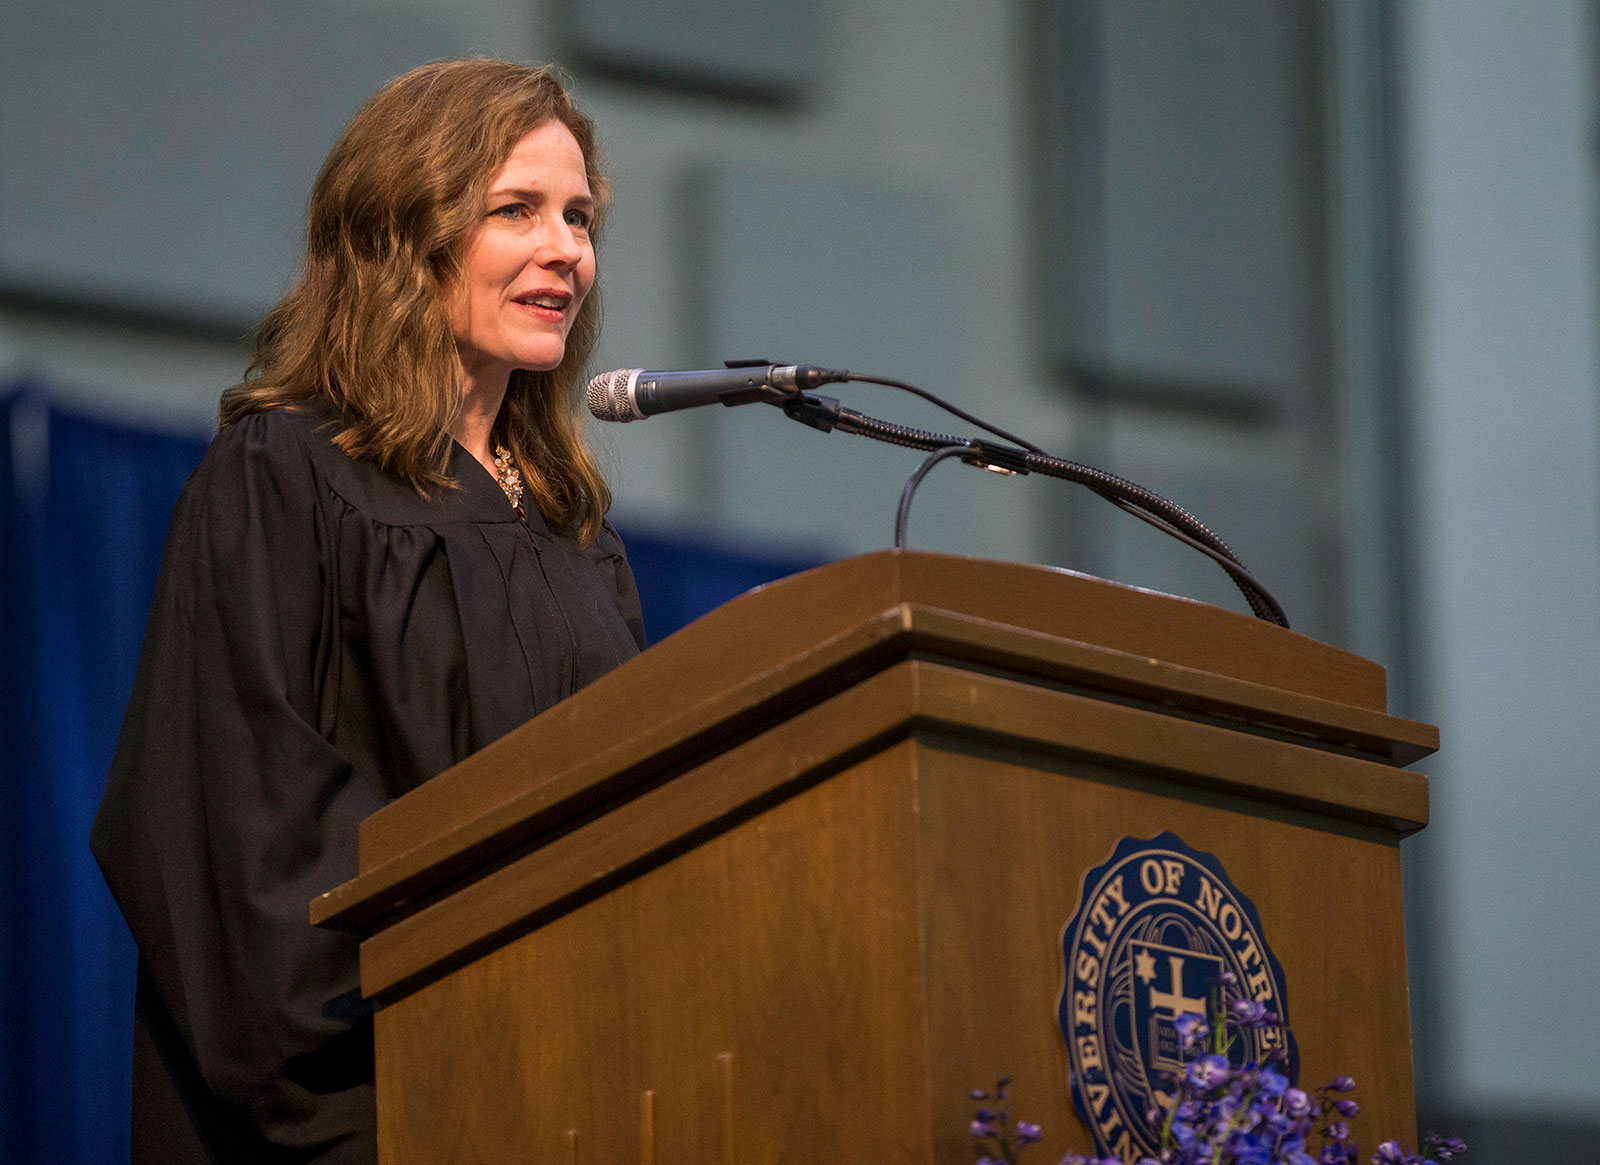 Judge Amy Coney Barrett delivers a speech at the University of Notre Dame's Law School commencement in 2018.